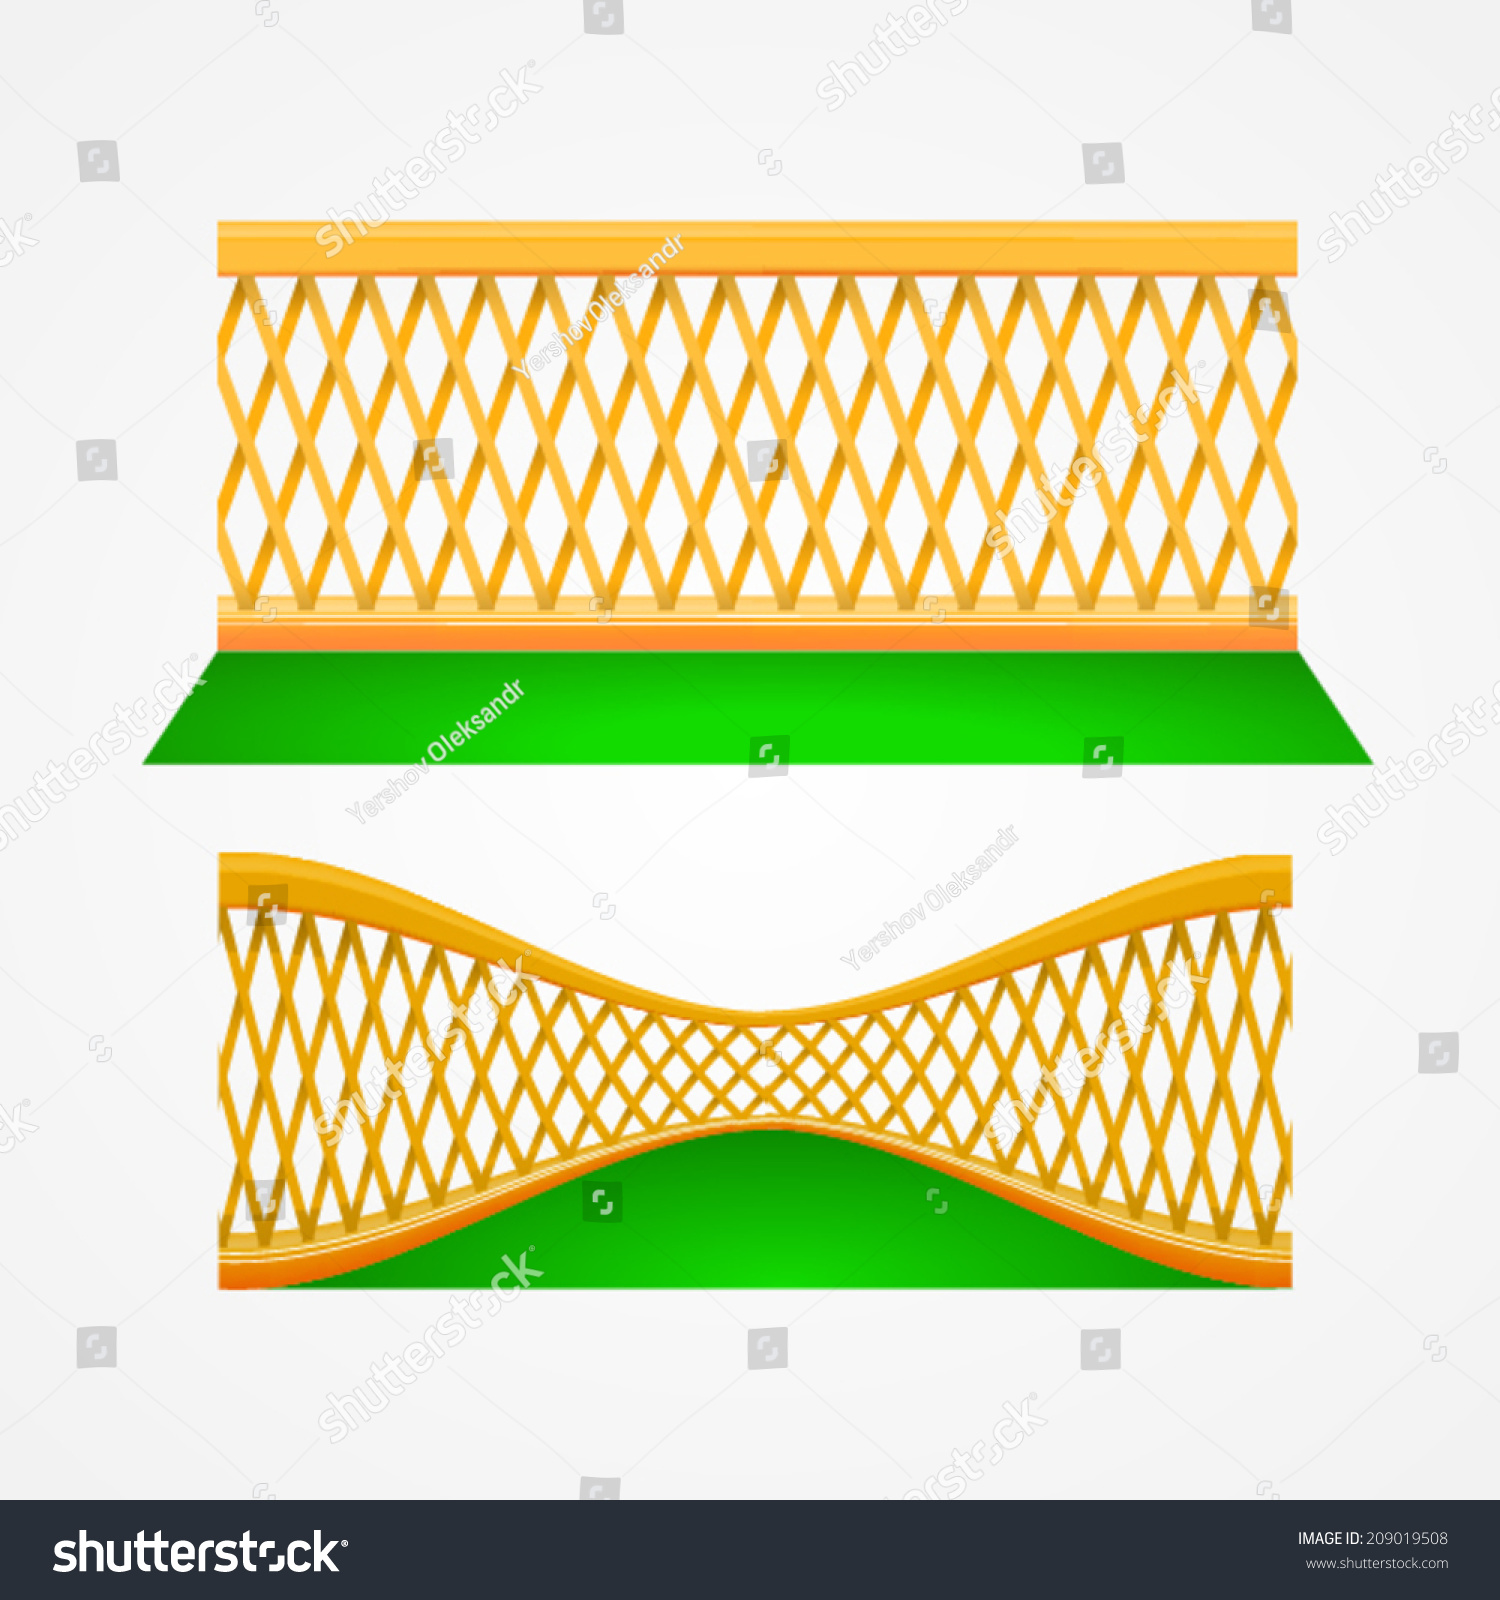 Illustration two garden trellis two wooden stock vector 209019508 illustration of two garden trellis two wooden gardening fences on grass front view and baanklon Image collections